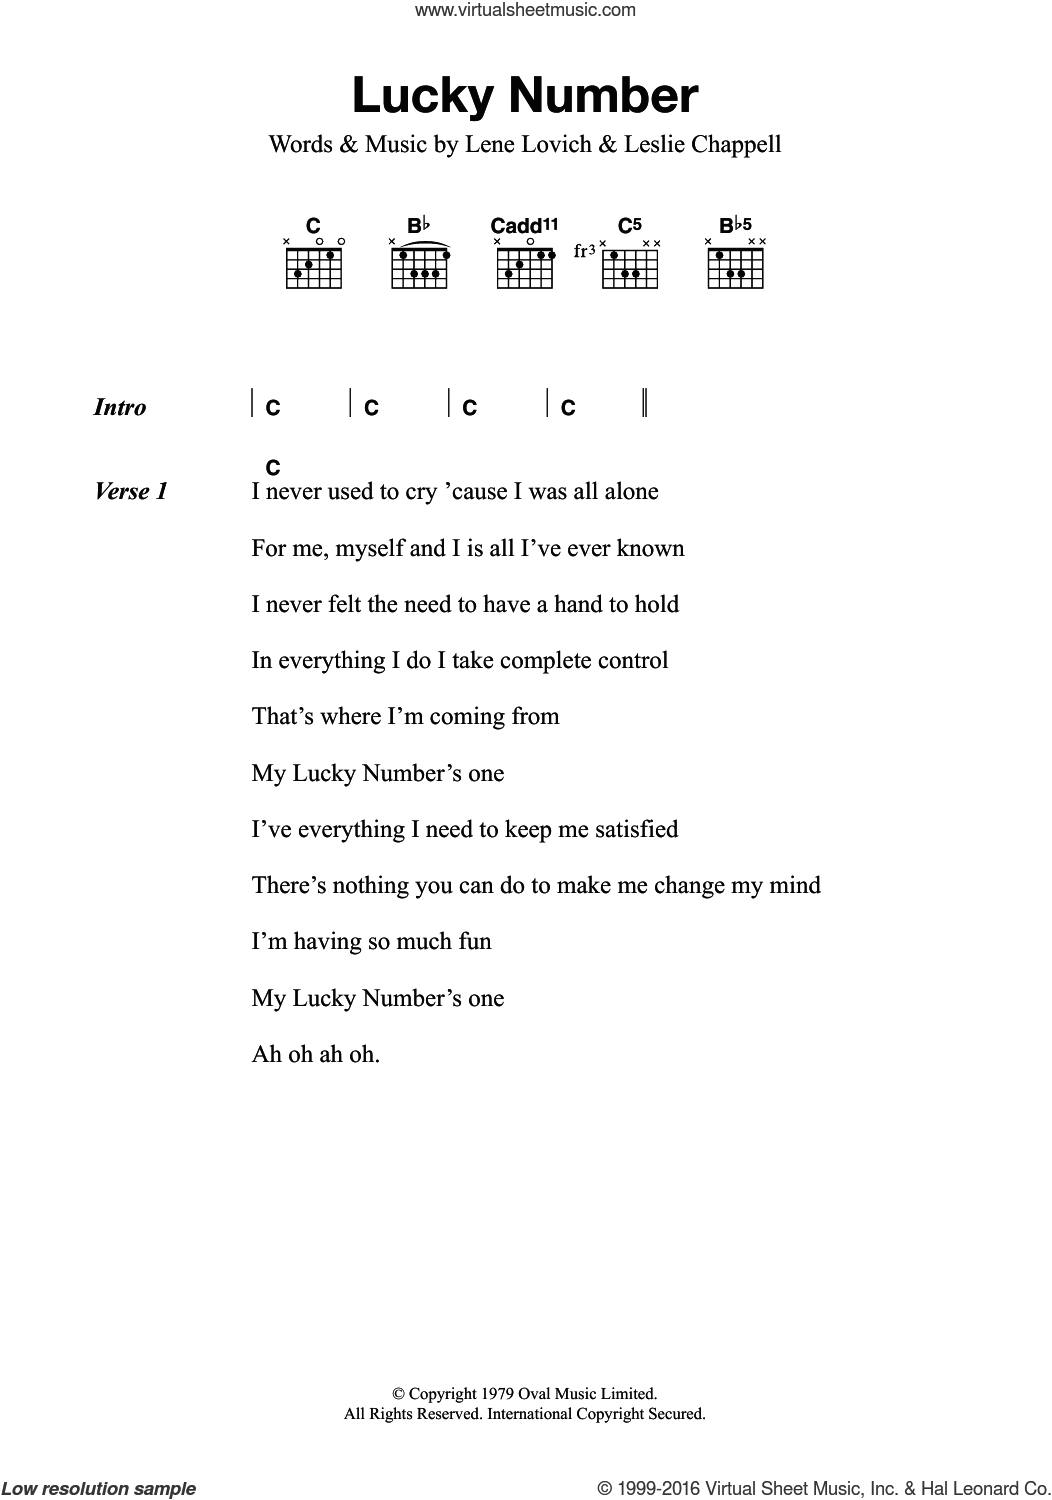 Lucky Number sheet music for guitar (chords) by Lene Lovich and Leslie Chappell, intermediate skill level